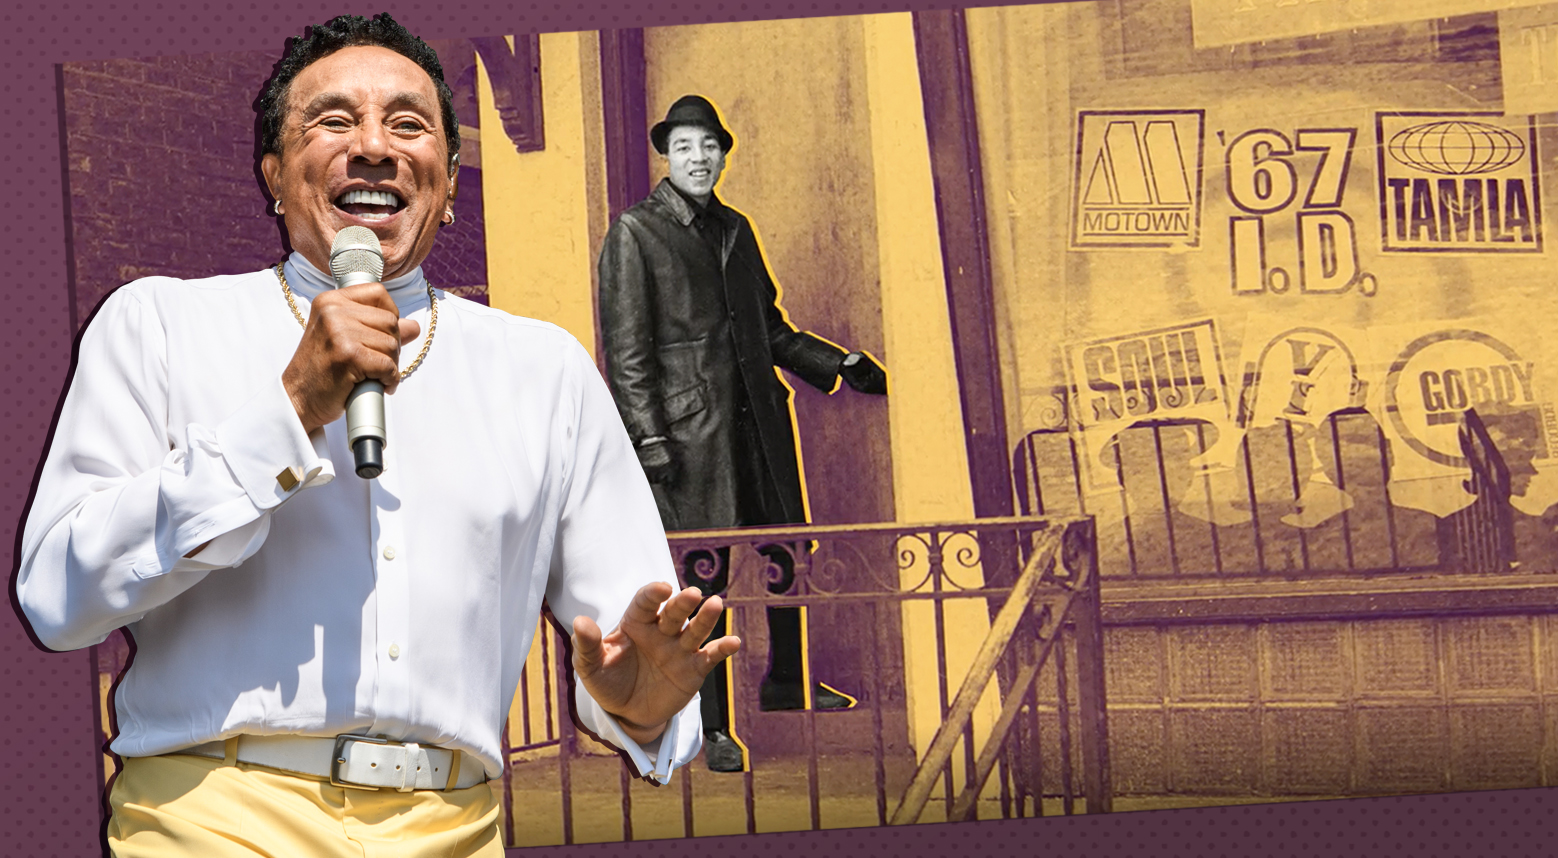 smokey robinson performing at jazz fest in new orleans in two thousand and eighteen overlaid on a vintage photo of him entering the motown record studio as a young man